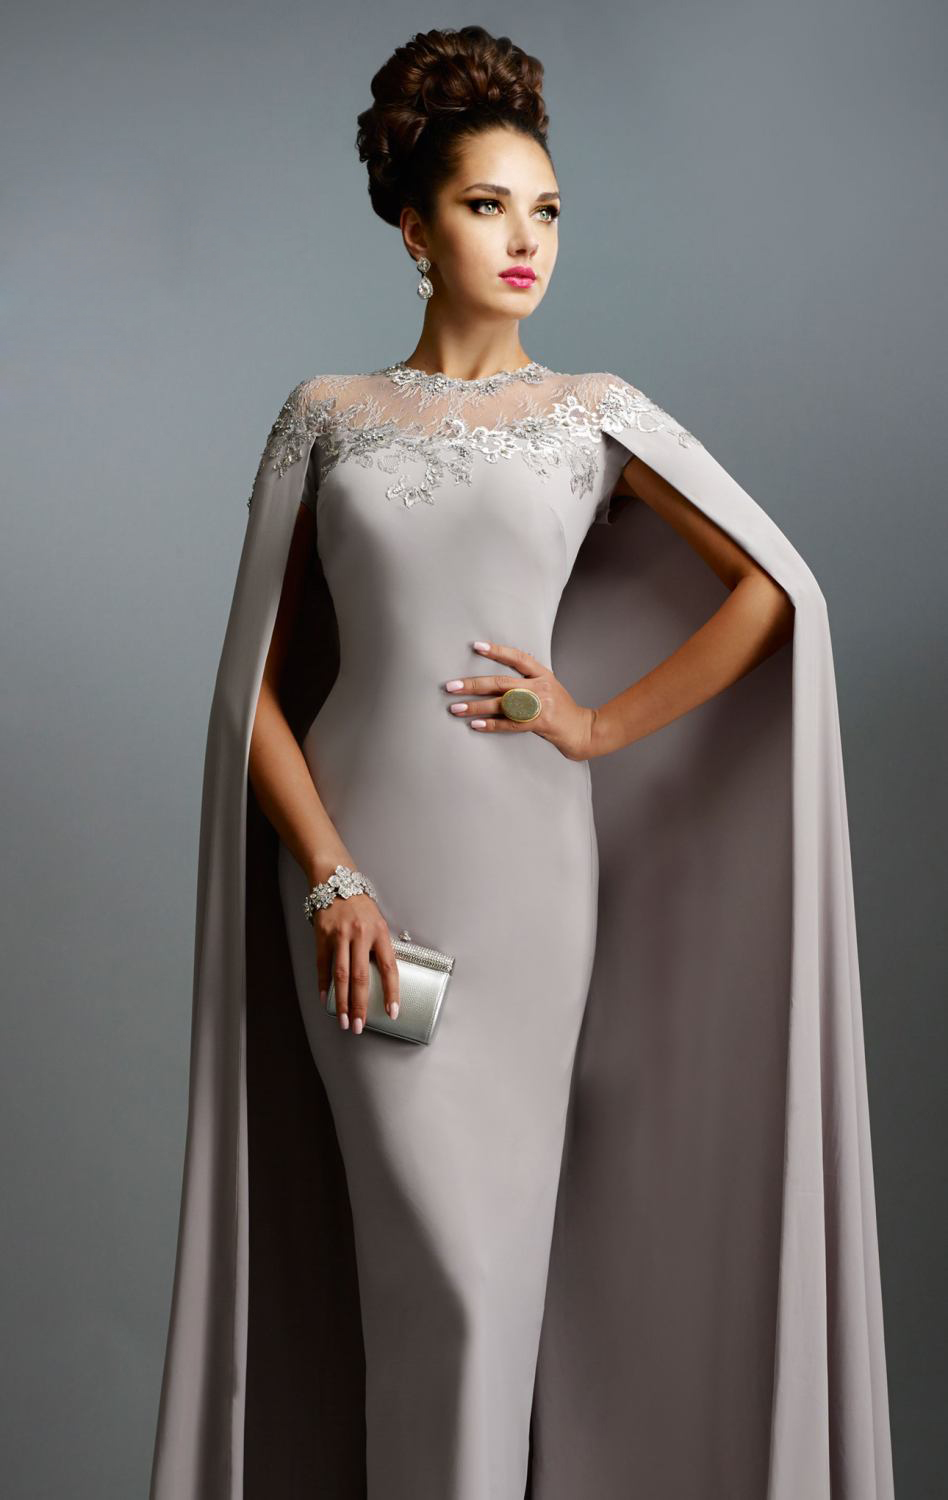 Unique Mother of the Groom Dresses | Dress images